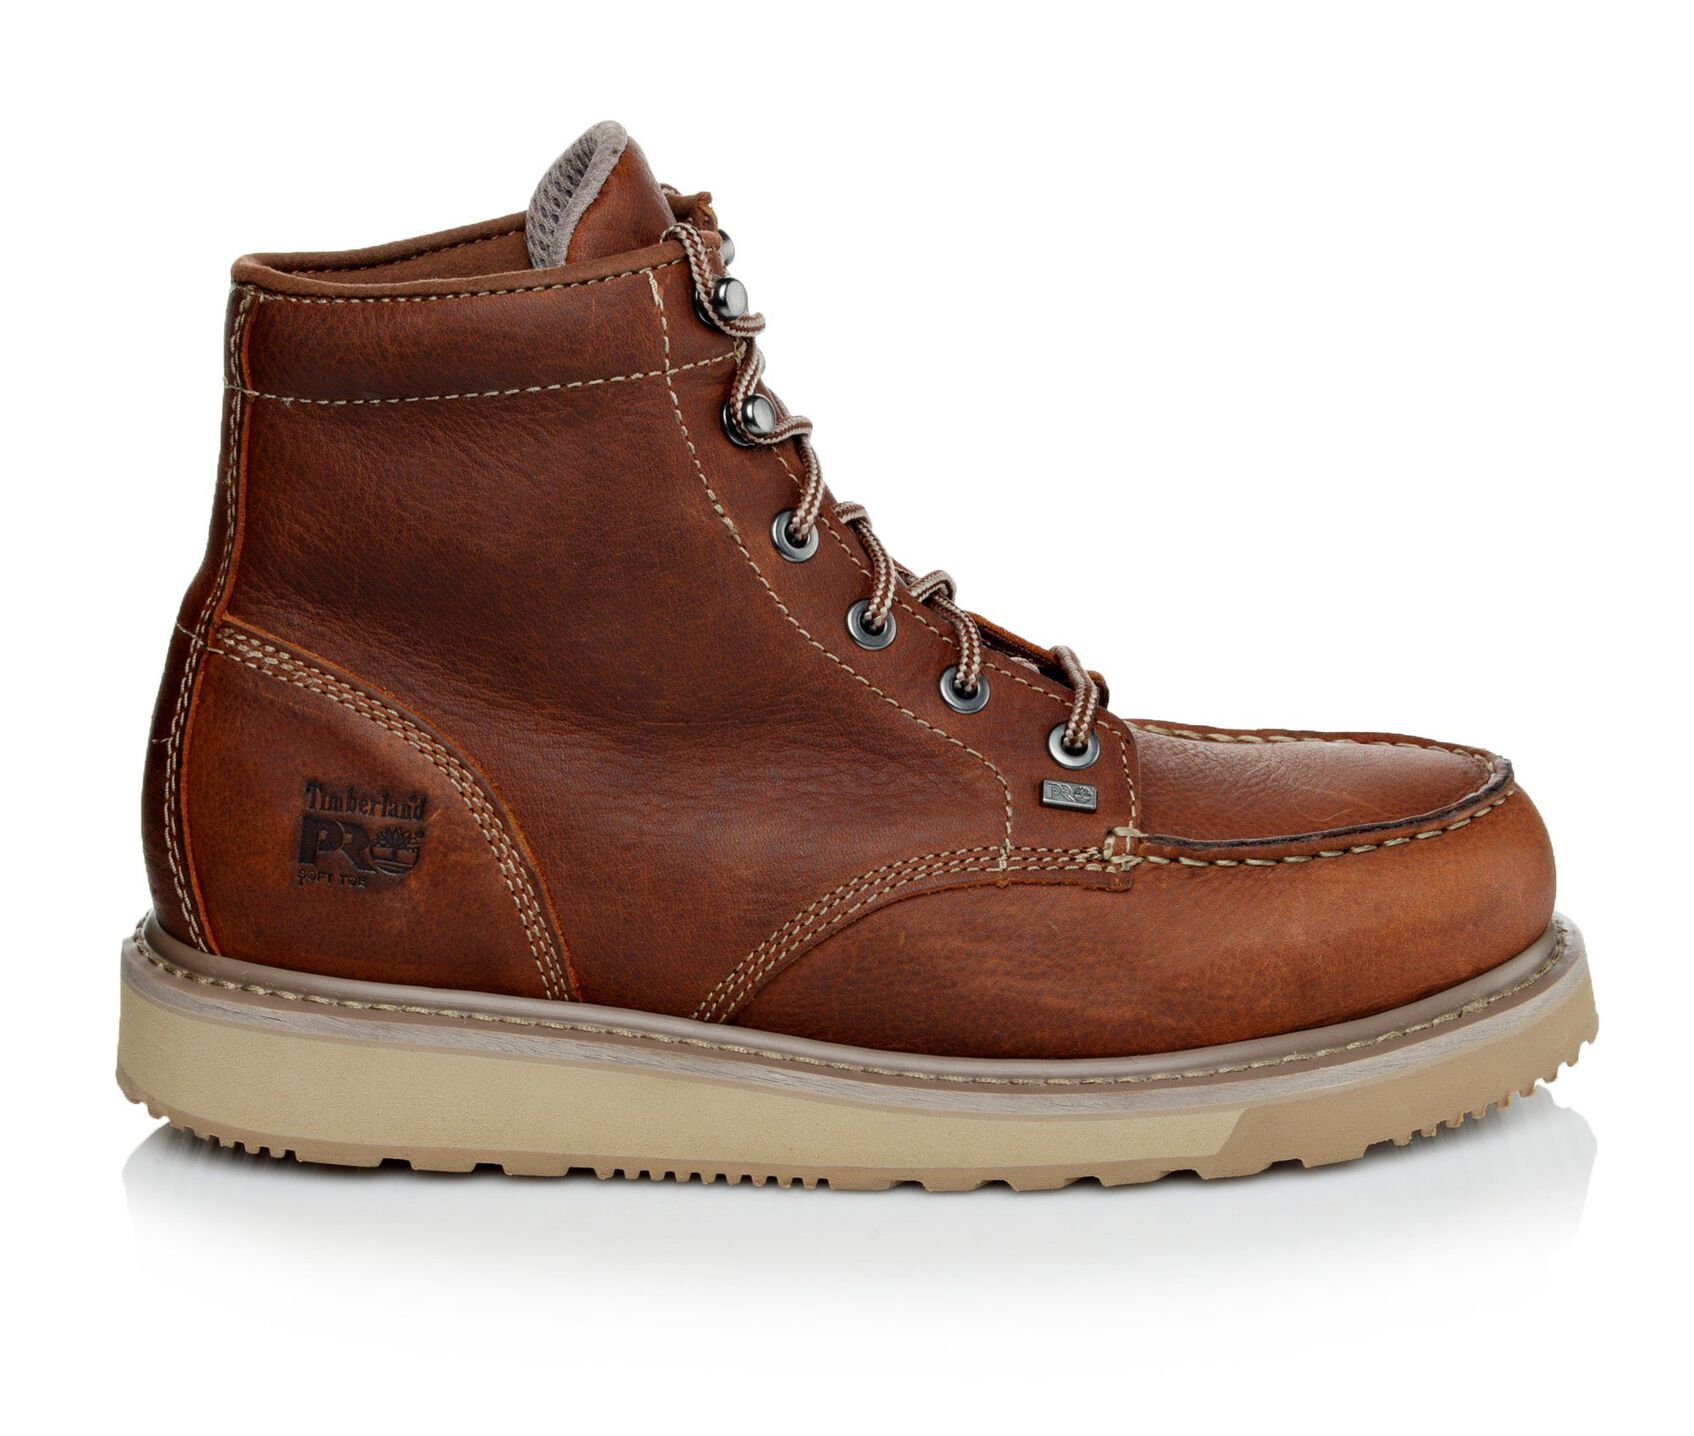 bb93bceb0fb ... Timberland Pro Barstow Wedge Electrical Hazard Boots. Previous